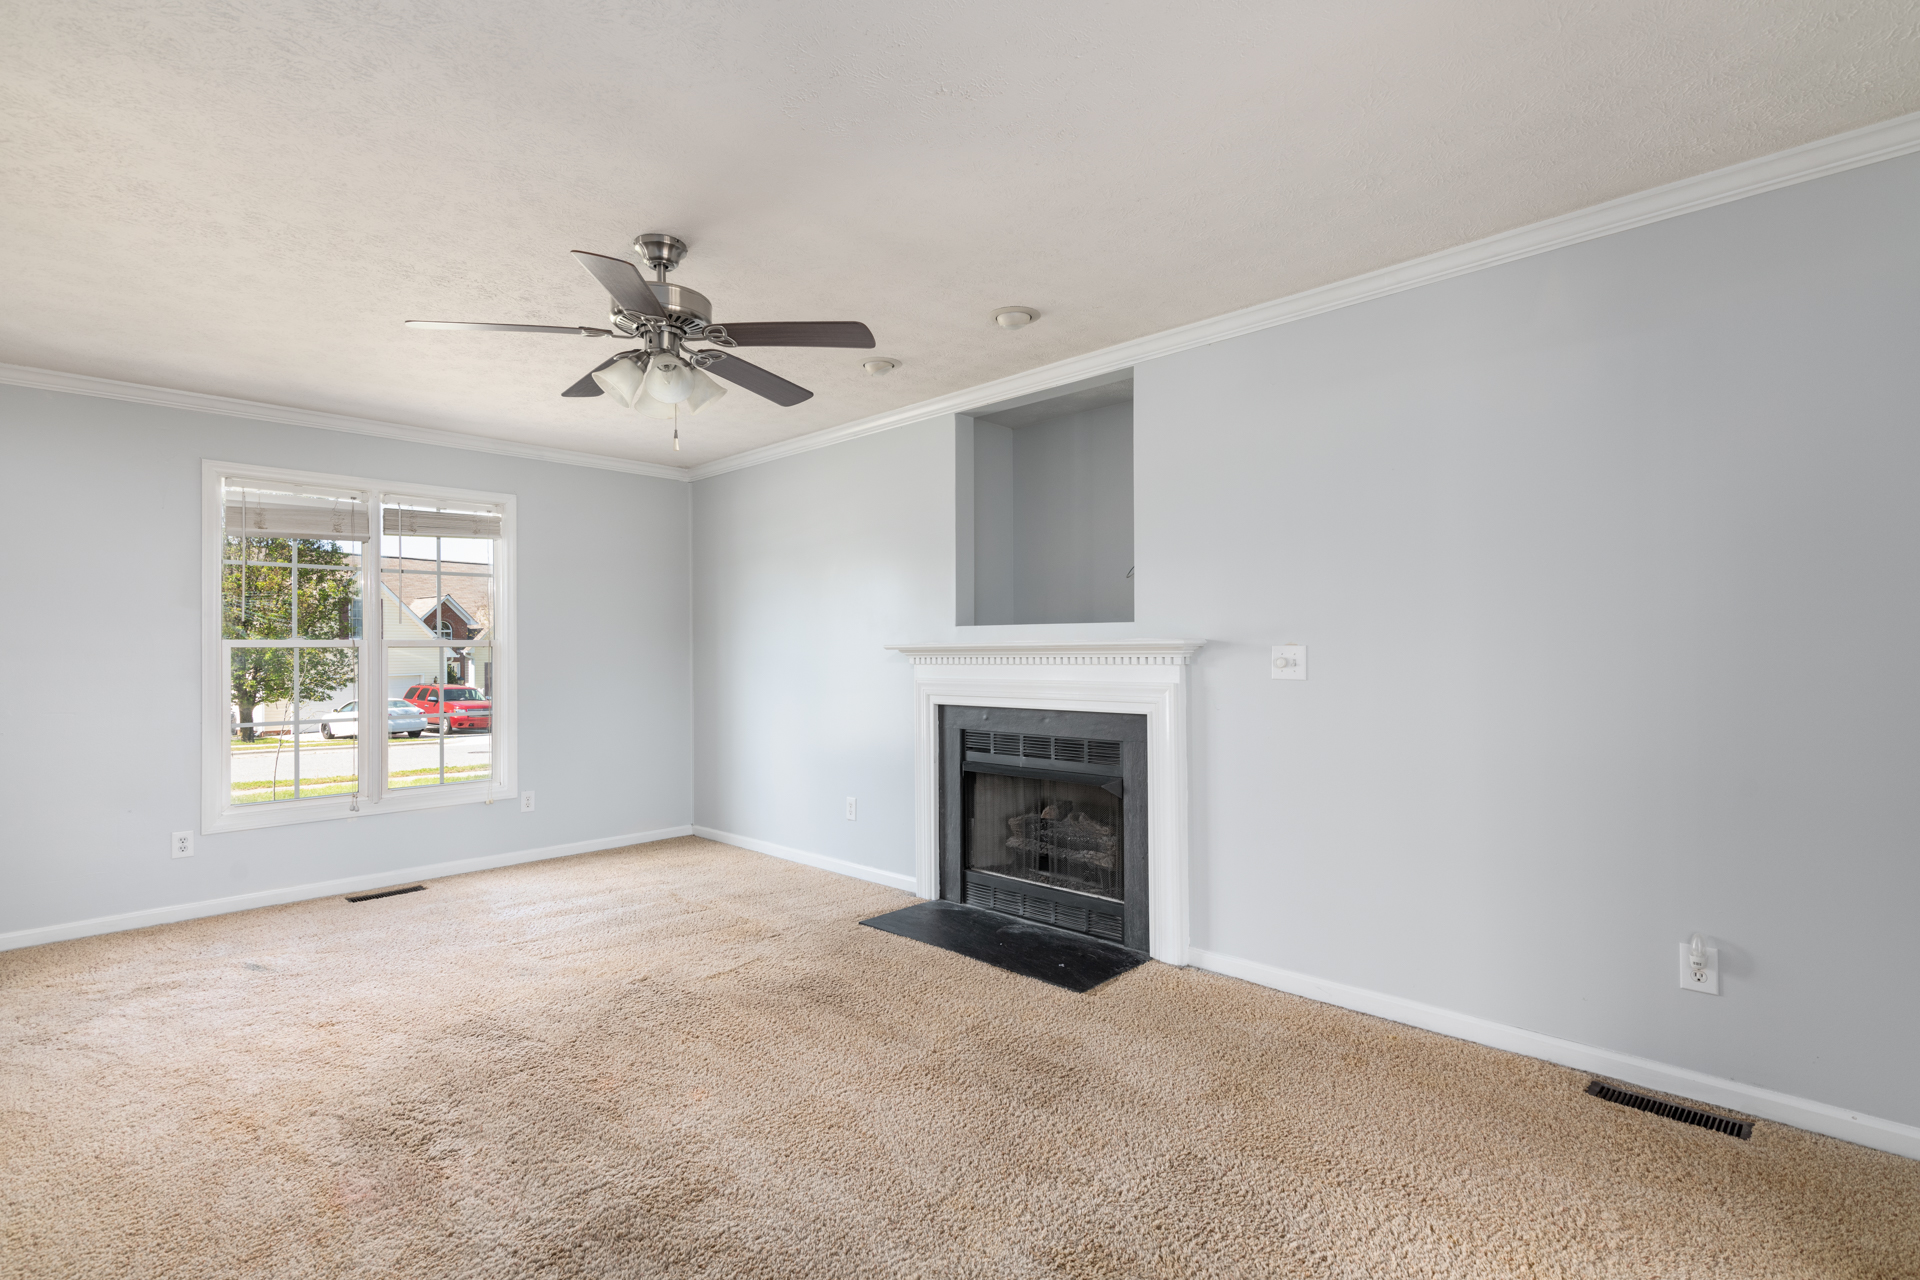 Real Estate images